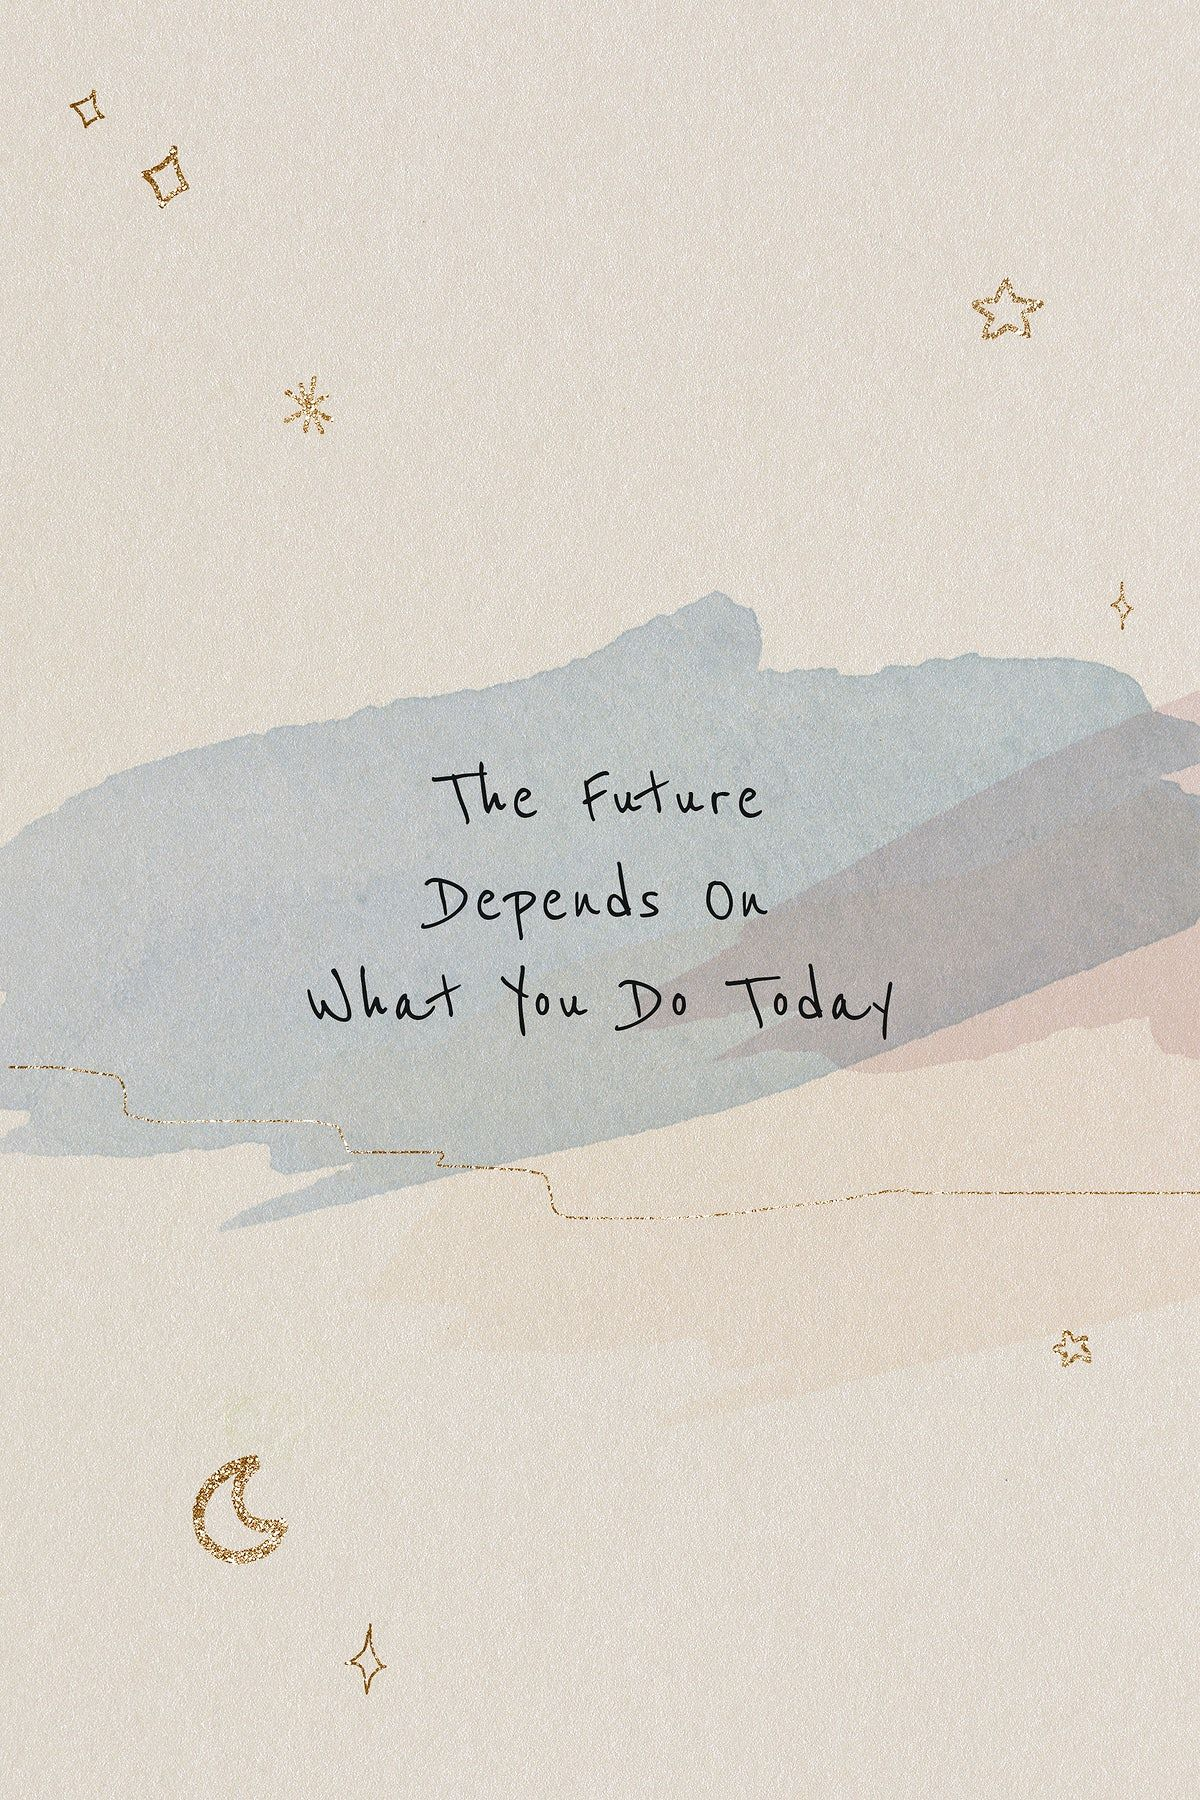 Download free illustration of The future depends on what you do today